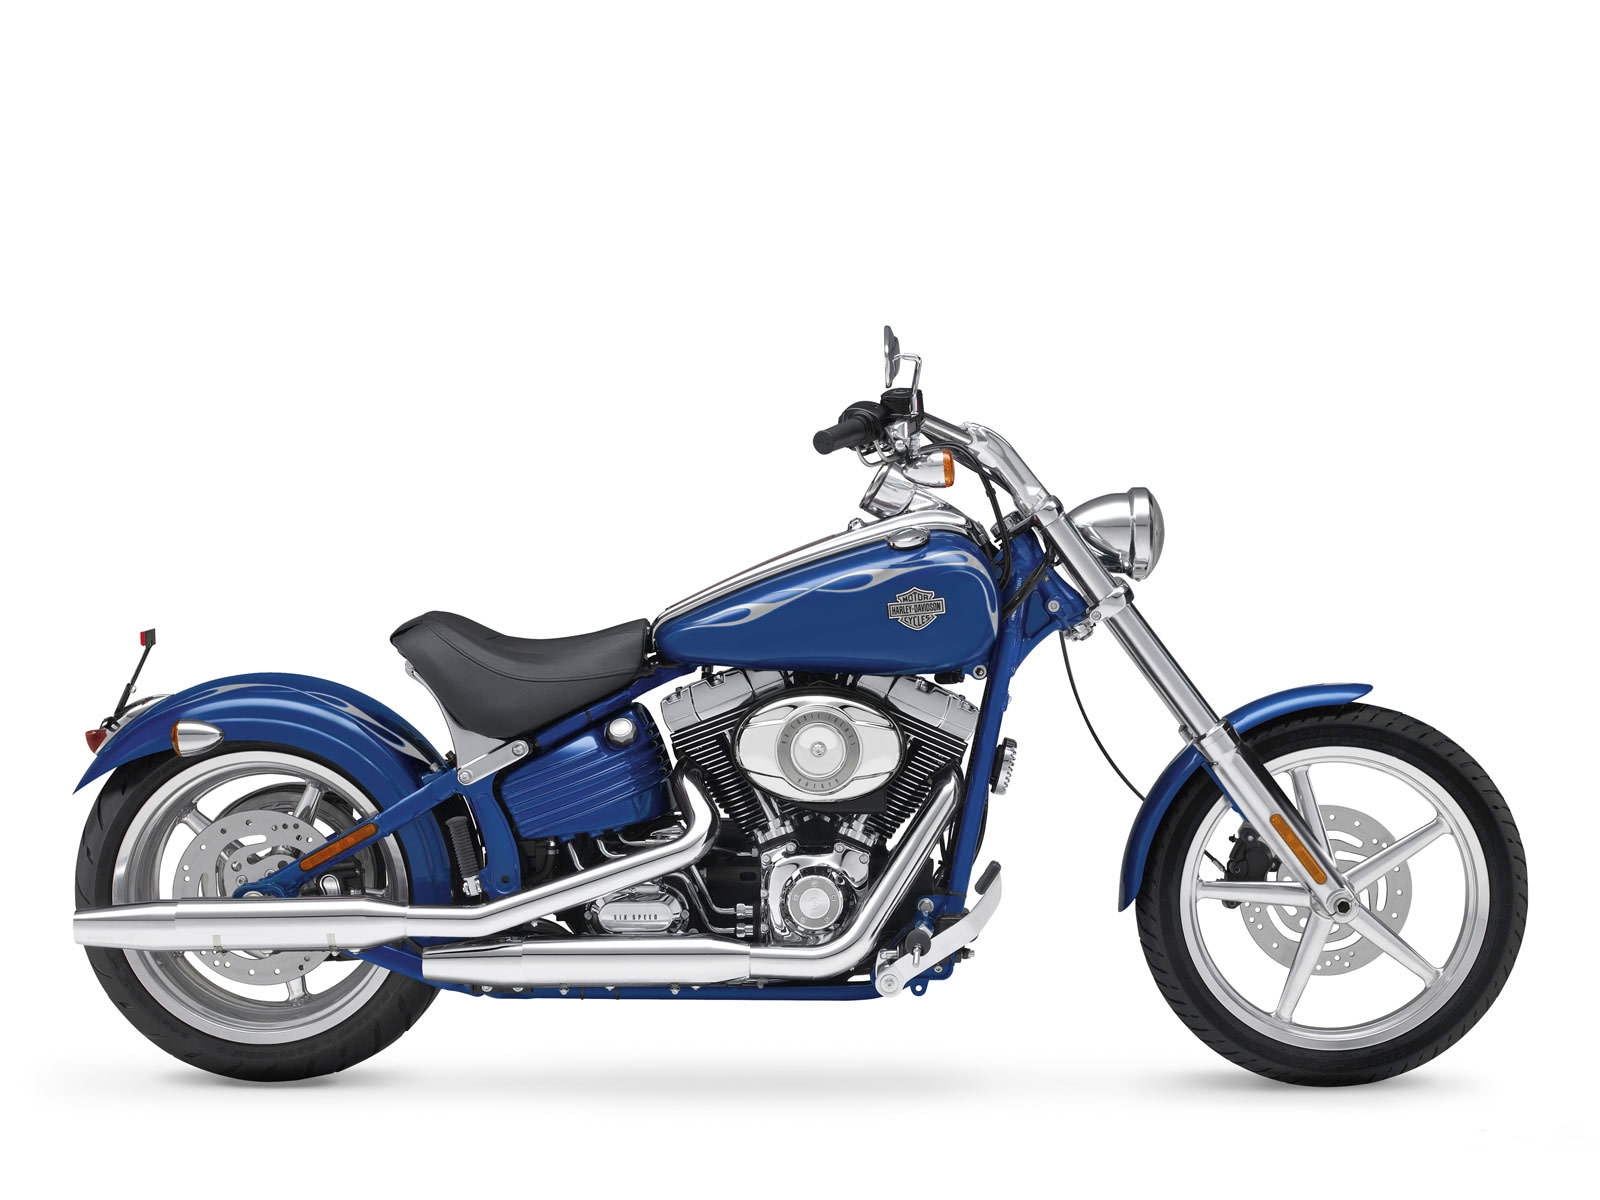 harley davidson 3 Jan 30- harley-davidson inc said on tuesday it will close a plant in kansas city,  missouri as it consolidates manufacturing operations after its.